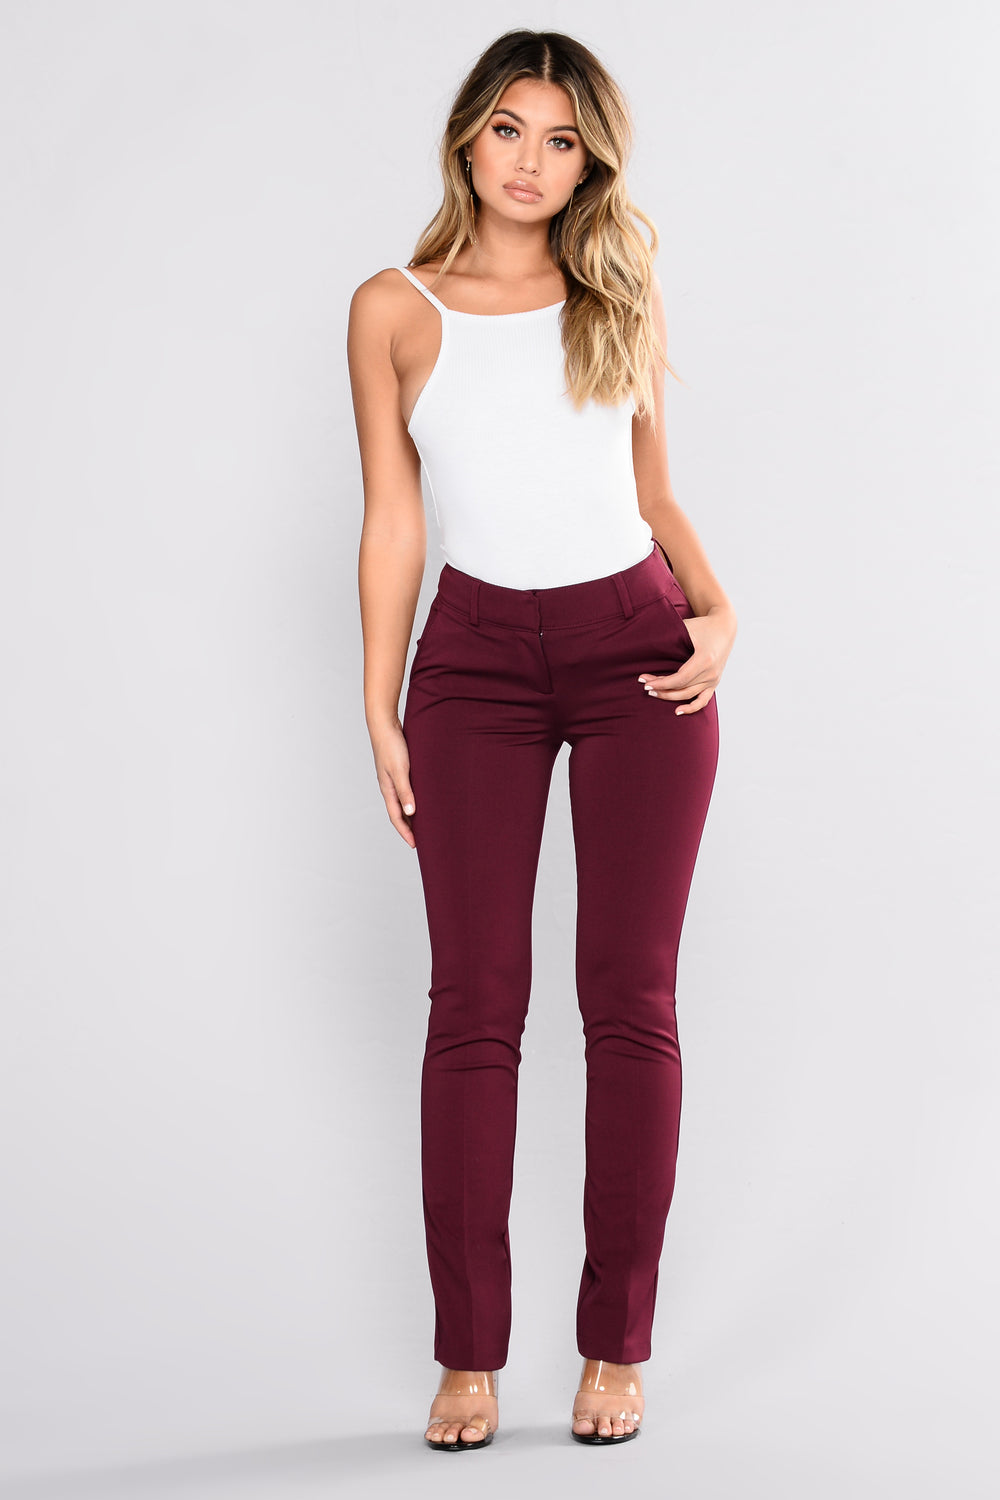 Enough Said High Rise Pants - Burgundy